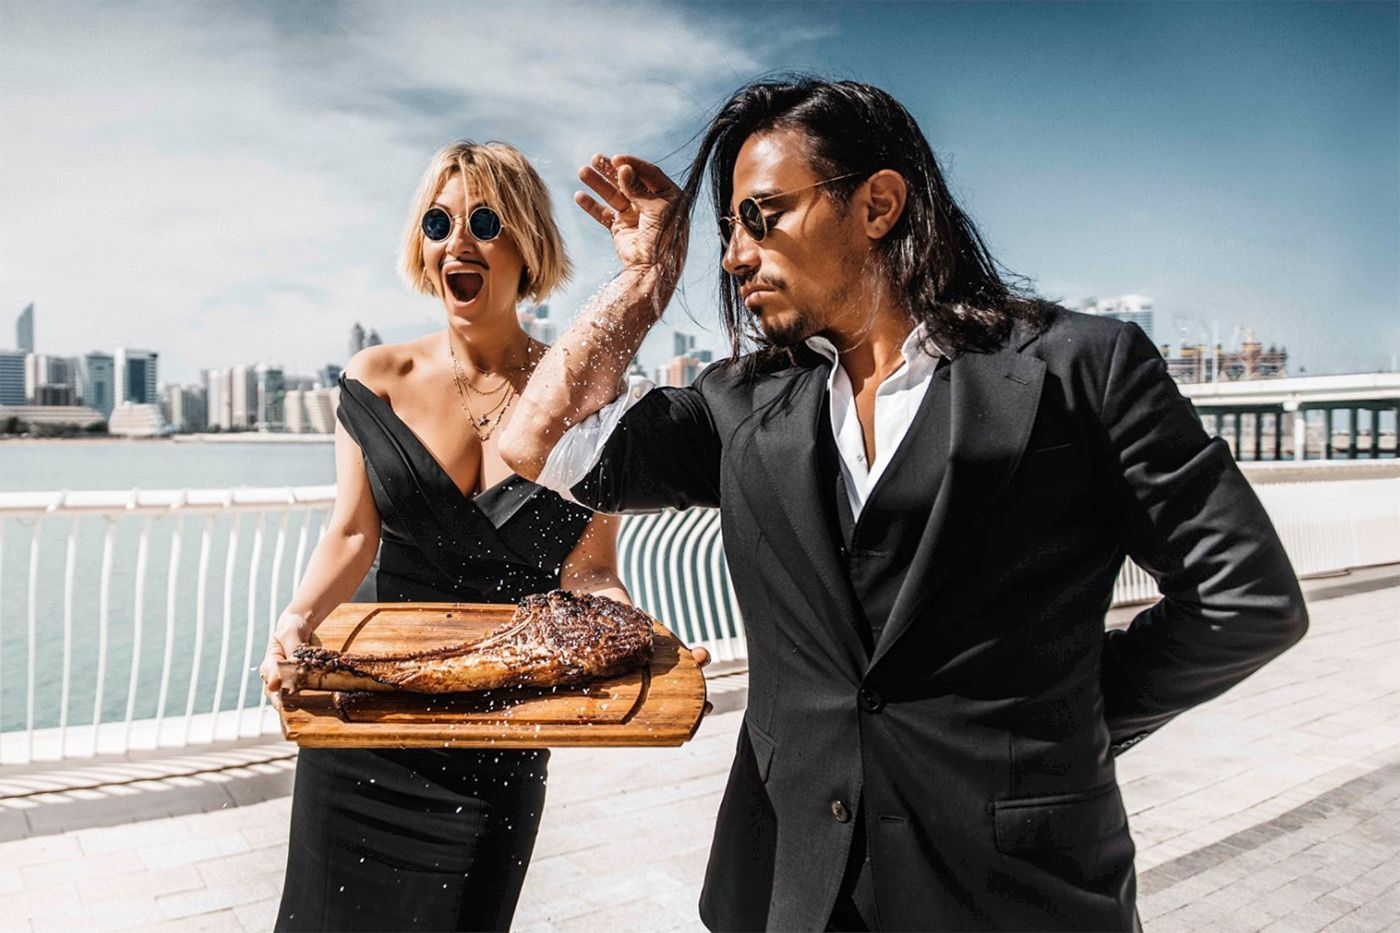 Salt Bae's New York Steakhouse Opens Today, #Baes #Opens #Salt #Steakhouse #Today #York